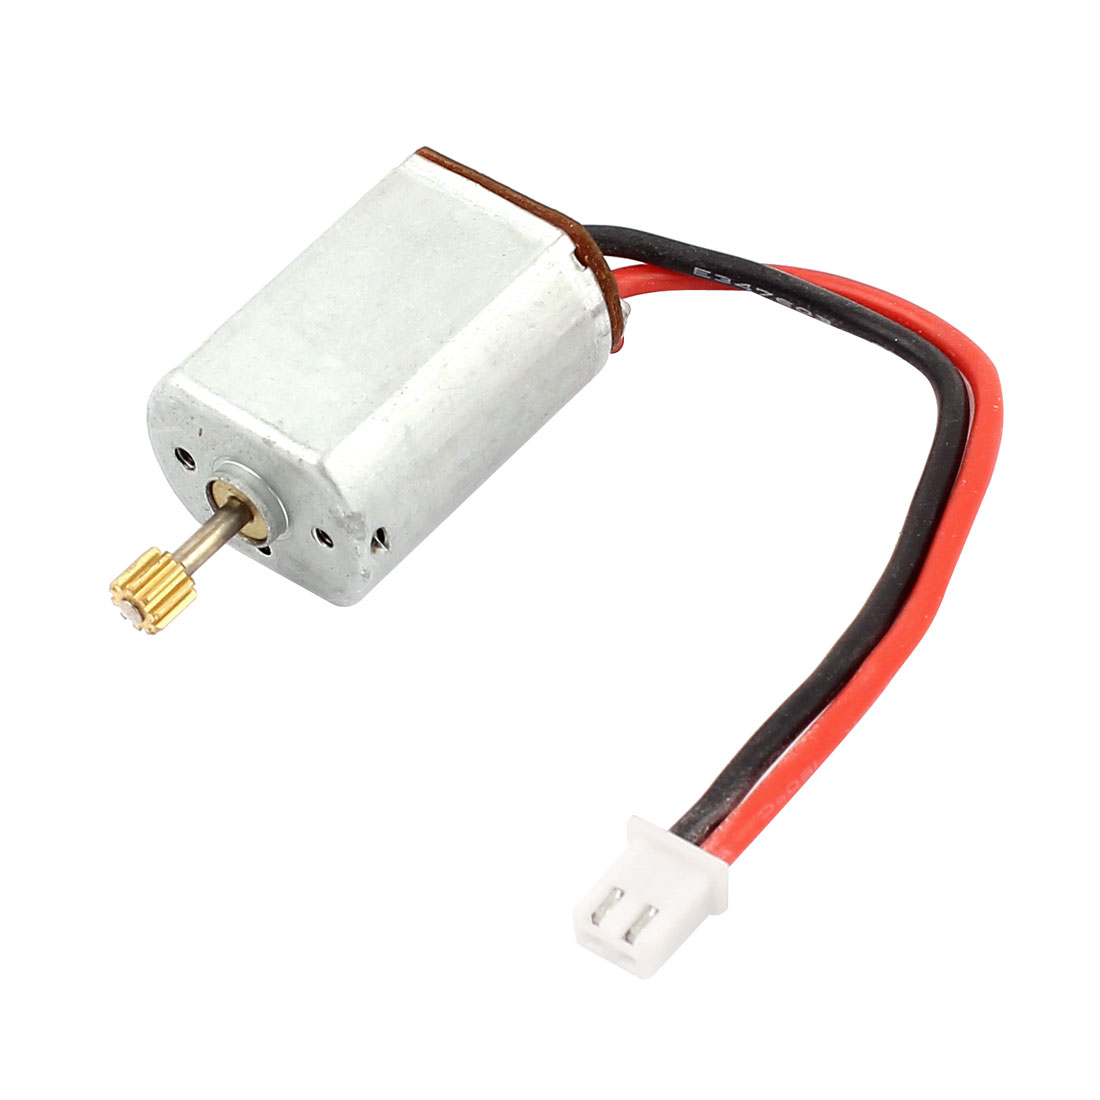 DC 7.4V 74000RPM Electric Toys Motor Replacement for SY 8088 RC Airplane